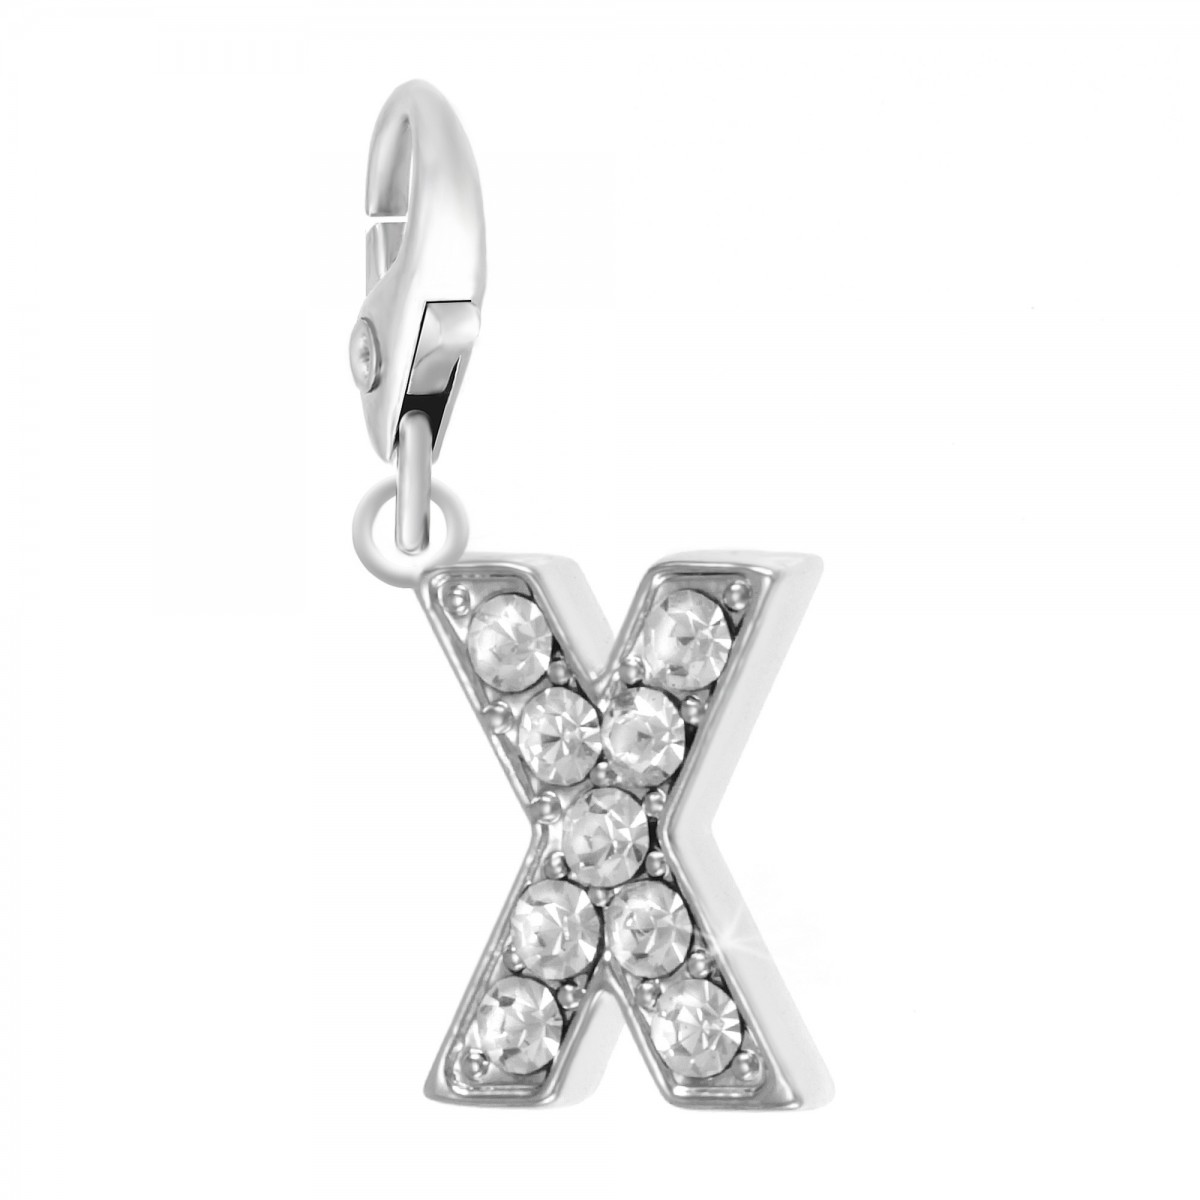 Charm Lettre X So Charm made with Crystal from Swarovski